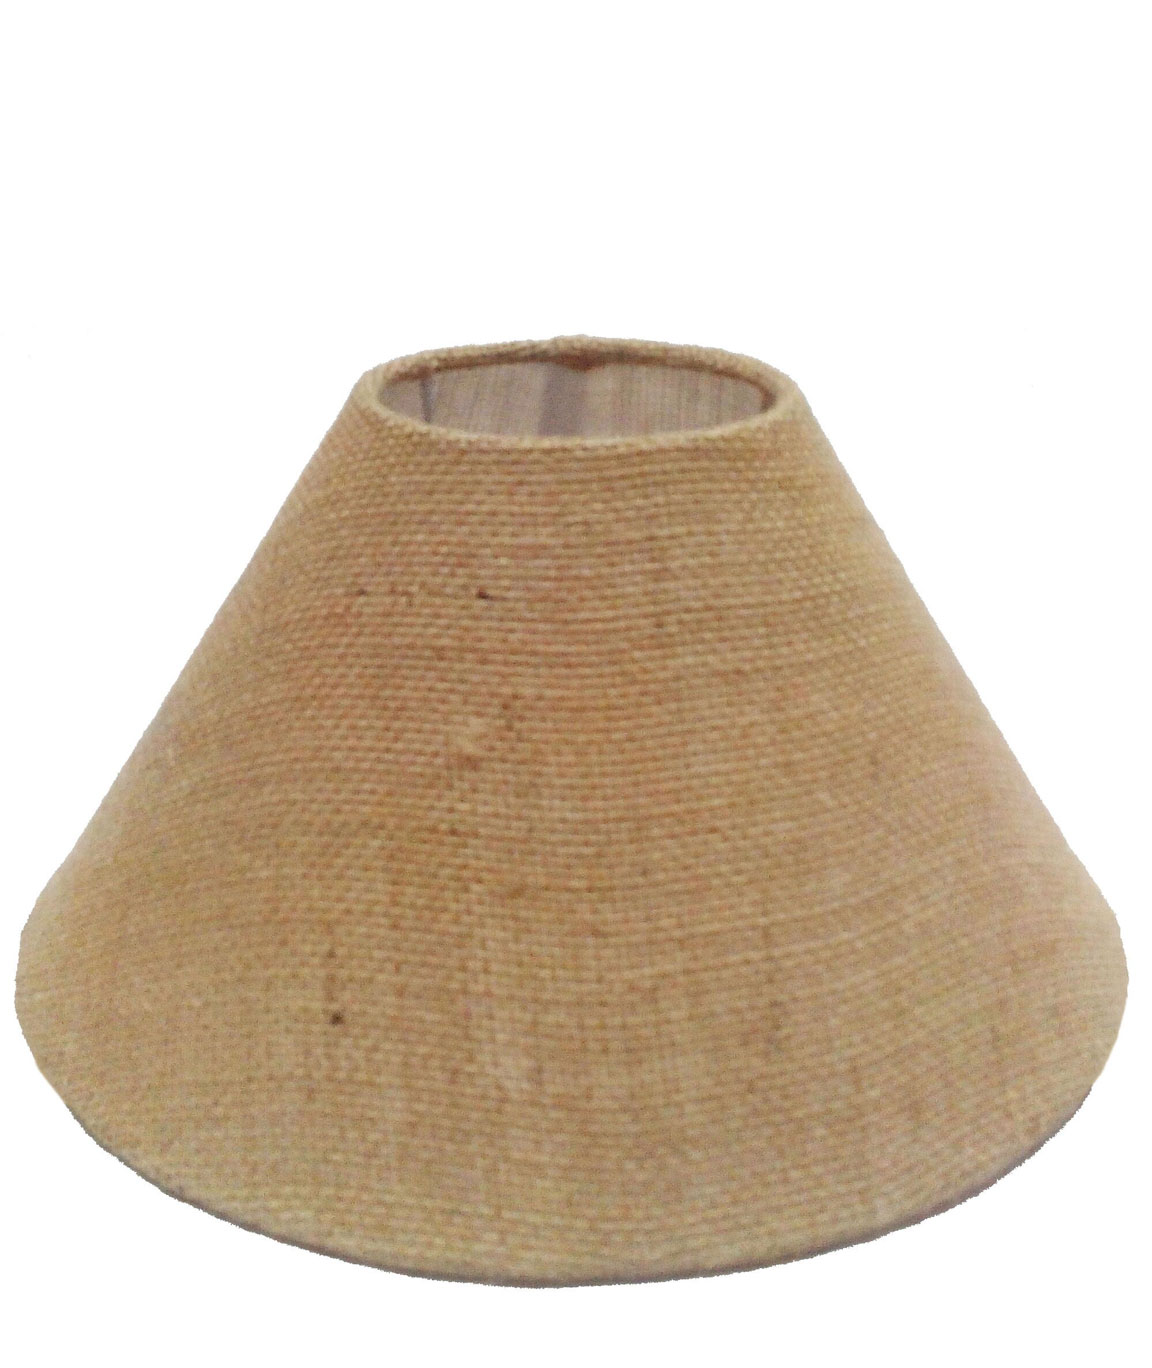 RDC 10 Inches Round Sand Brown Jute Lamp Shade for Table Lamp (E27 Holder Ring)